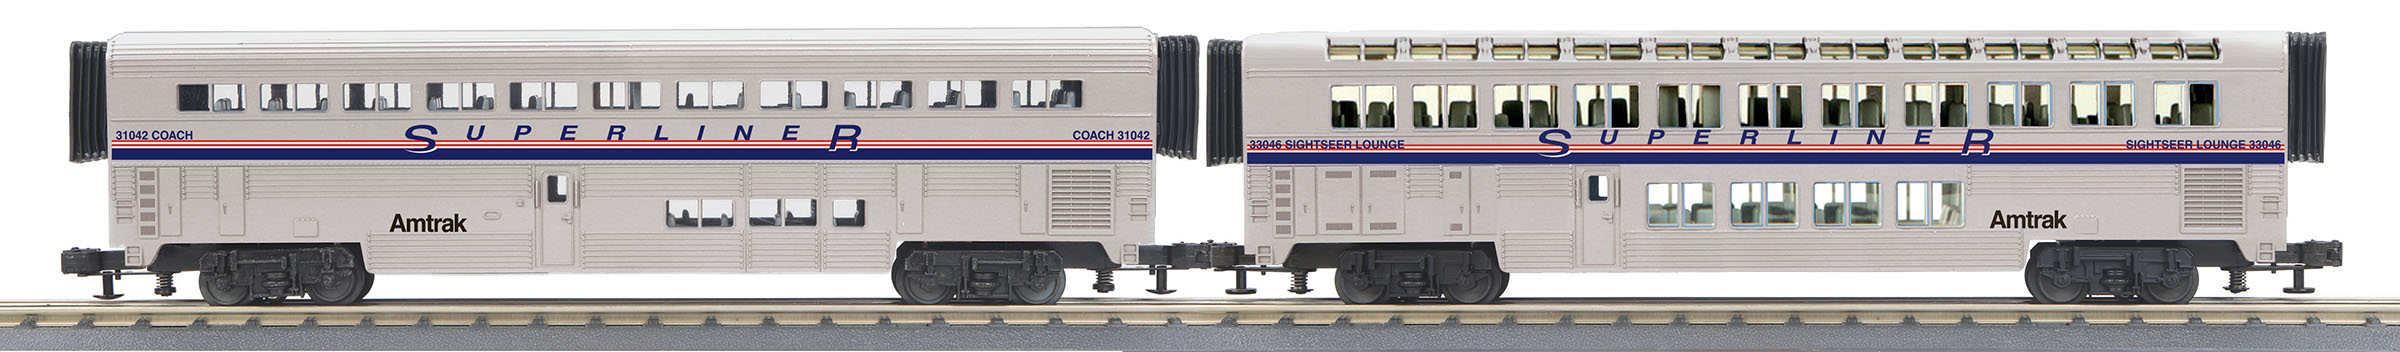 MTH306539 MTH Electric Trains O-31 SuperLiner Coach/Lounge, Amtrak/PhIV #31035